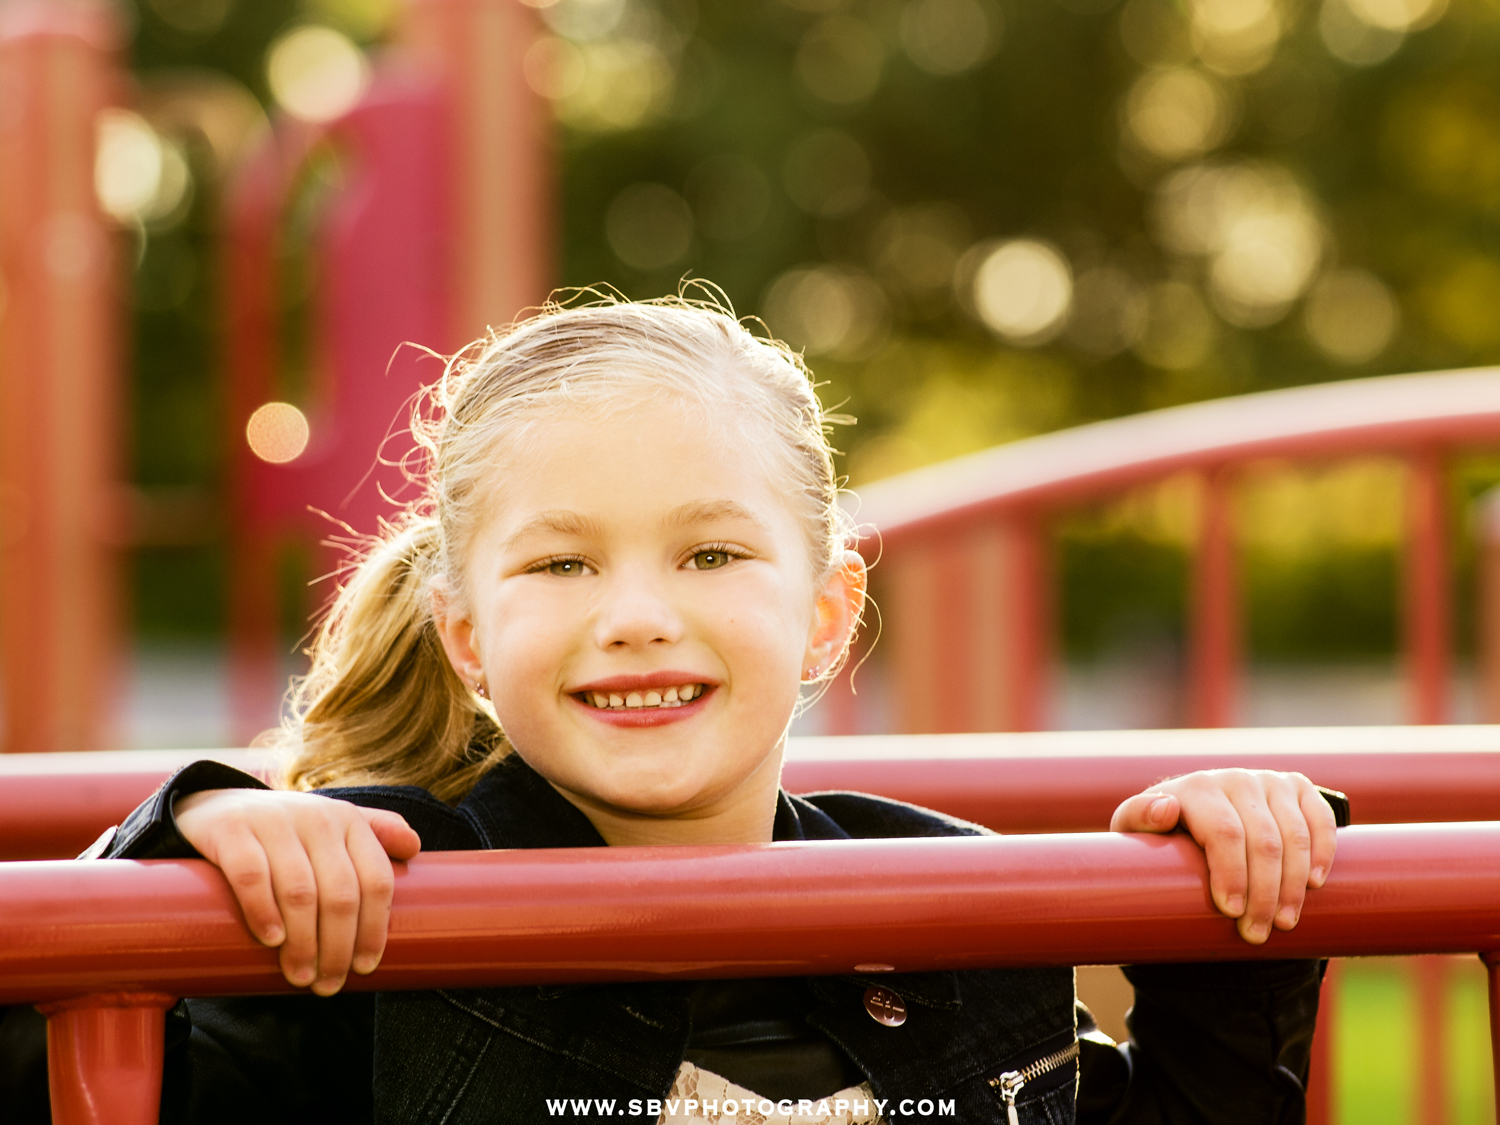 Little girl smiles as she plays in a Northwest Indiana playground for Fall Lifestyle Portraits.